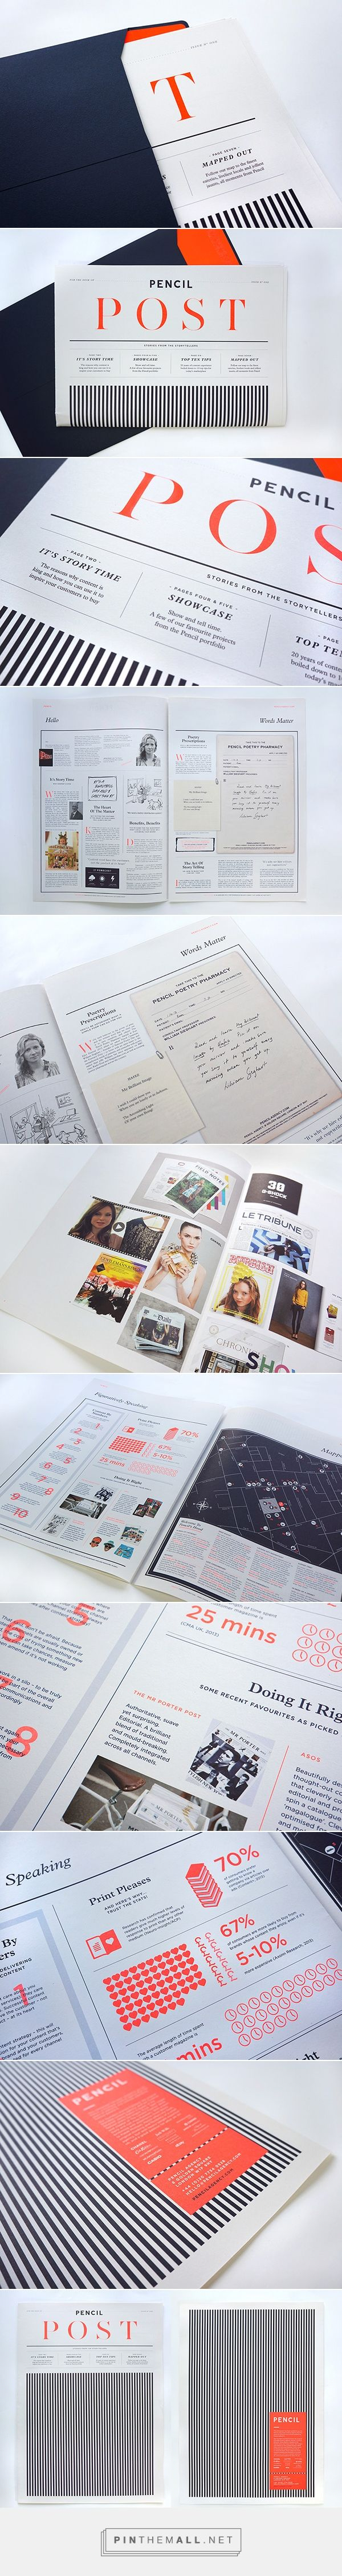 Pencil – Pencil Post on Behance... - a grouped images picture - Pin Them All